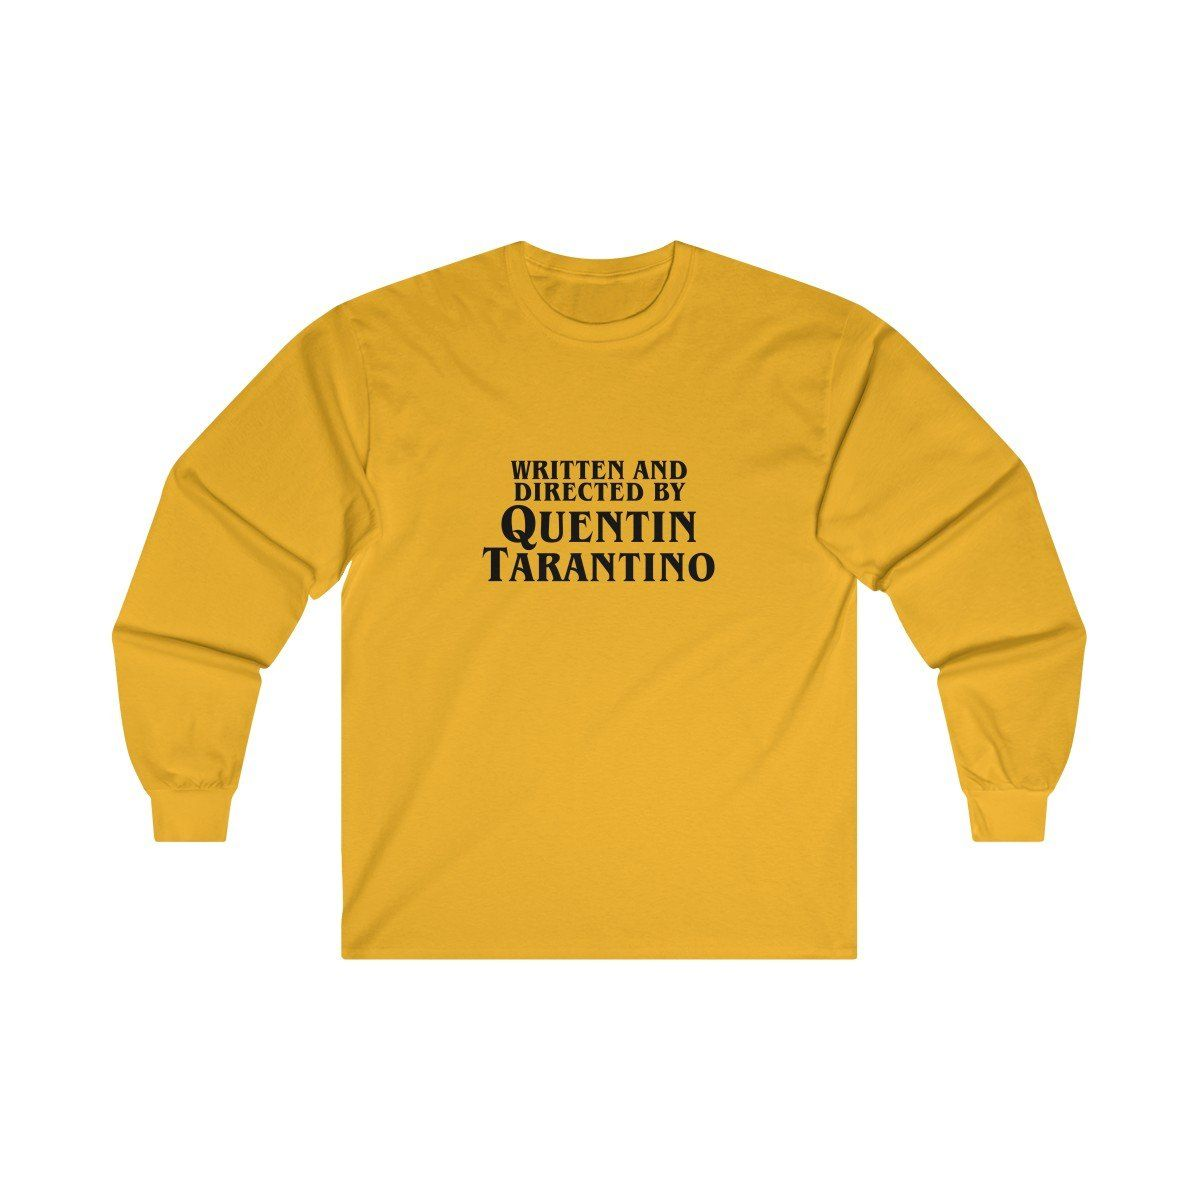 WRITTEN AND DIRECTED BY QUENTIN TARANTINO long-sleeved screenprinted T Shirt